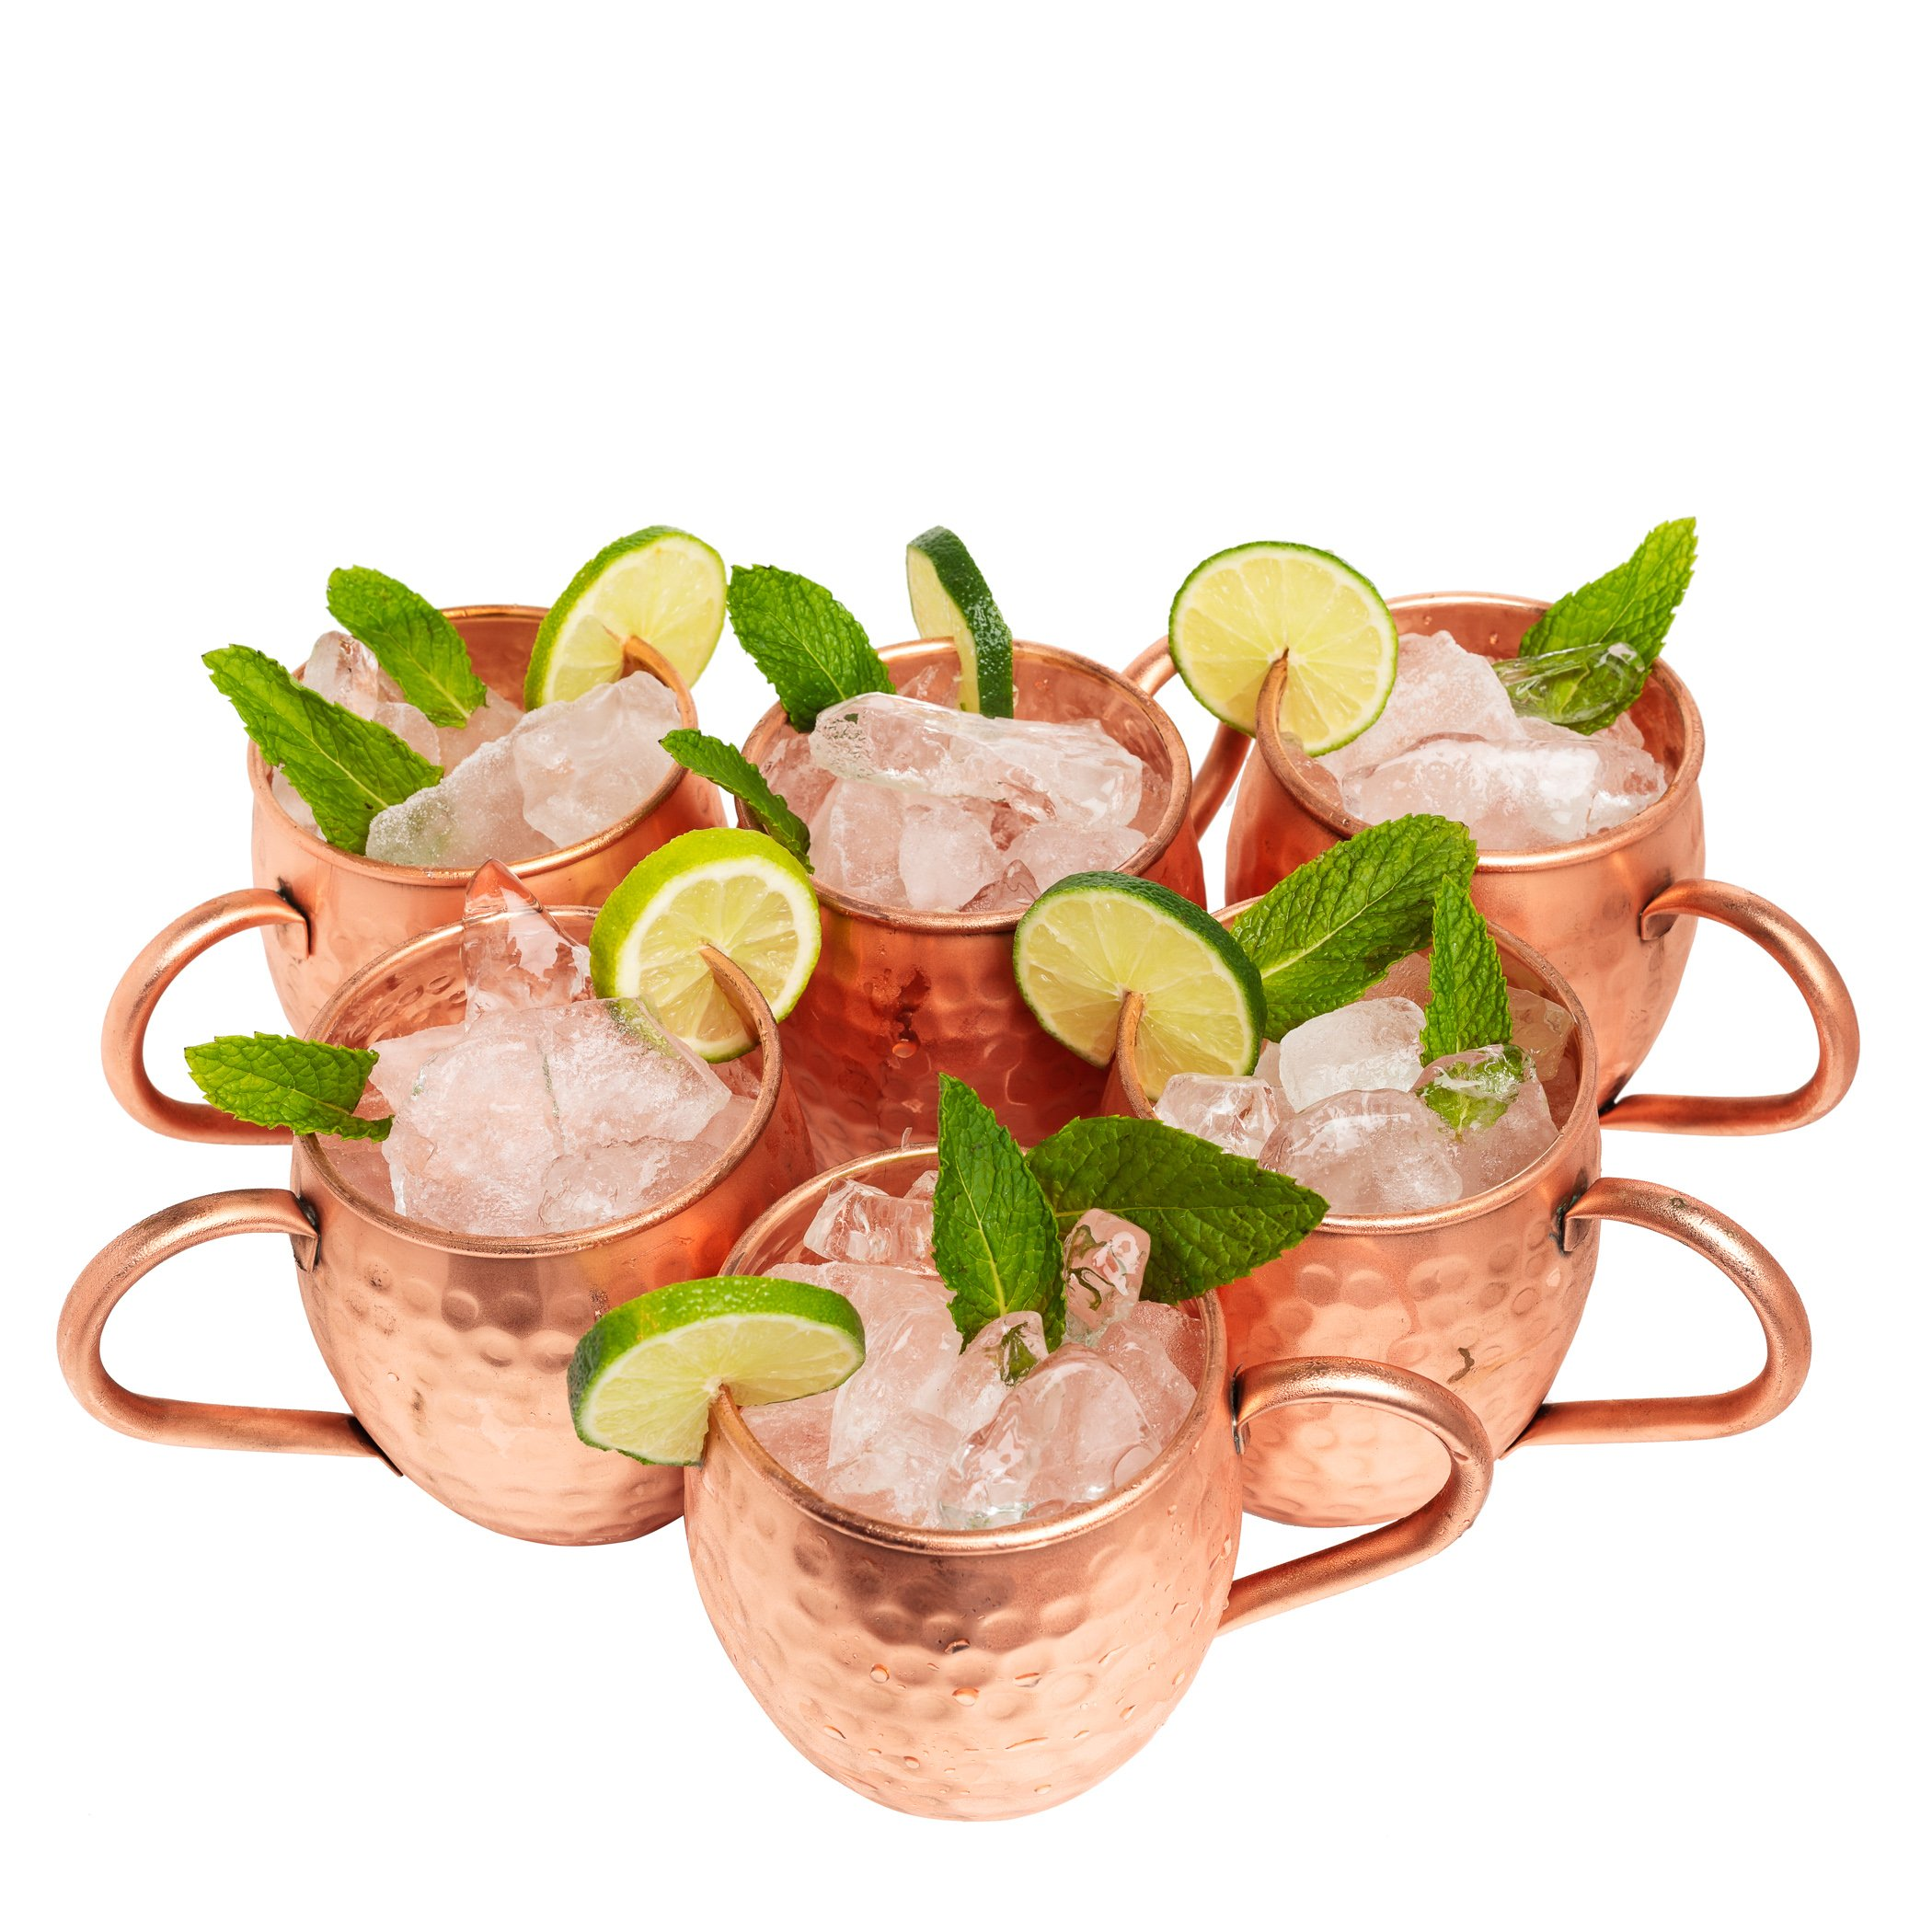 Kitchen Science Moscow Mule Hammered Copper 16 Ounce Drinking Mug, Set of 6 (6)